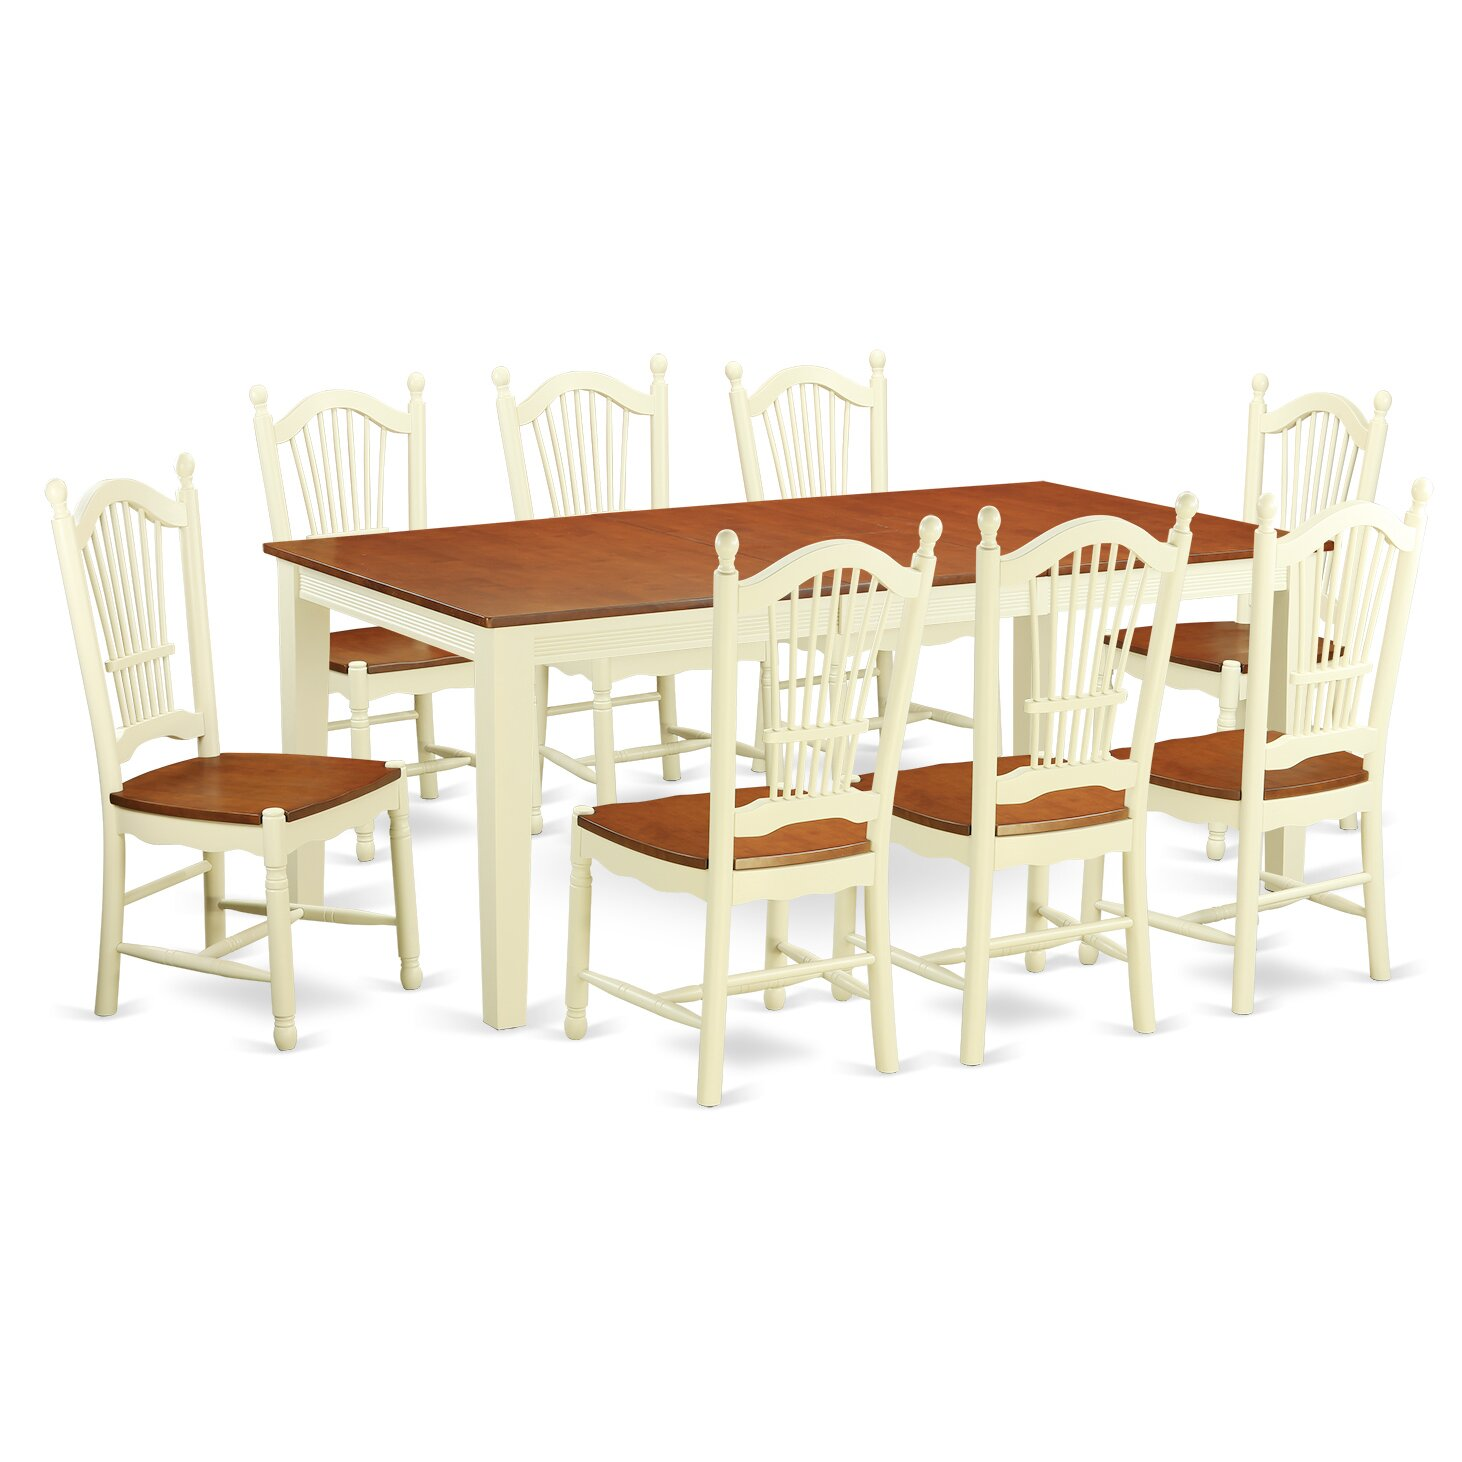 9 Piece Dining Table Set For 8 Dining Room Table With 8: East West Quincy 9 Piece Dining Set